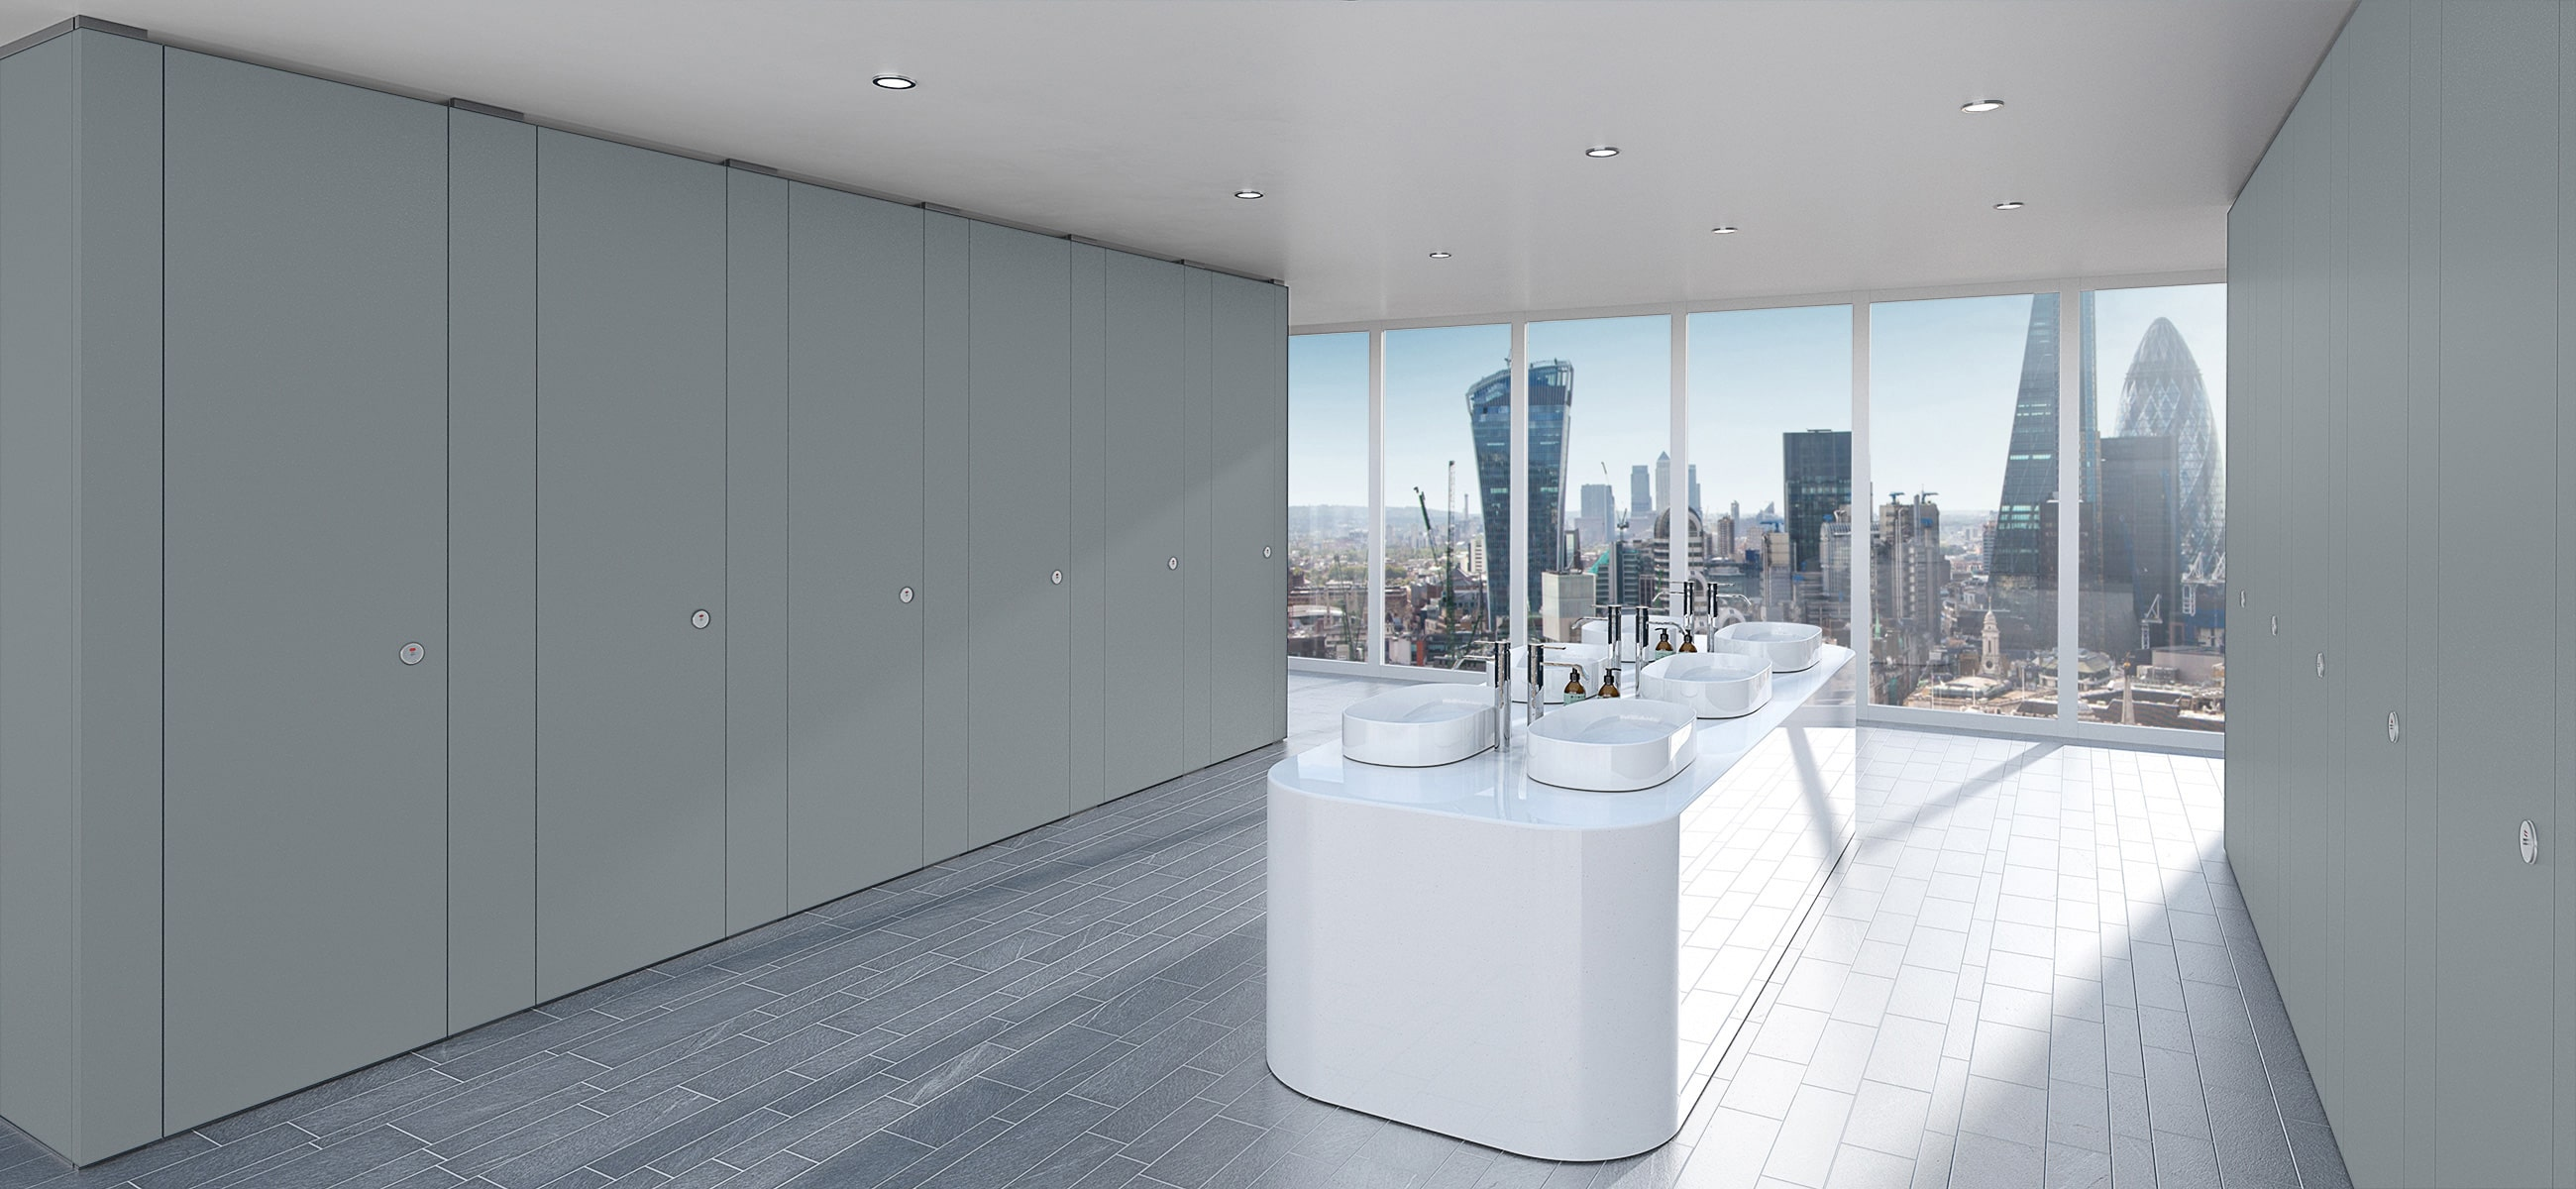 Sylan Commercial Washroom Cubicles in Grey ColourCoat